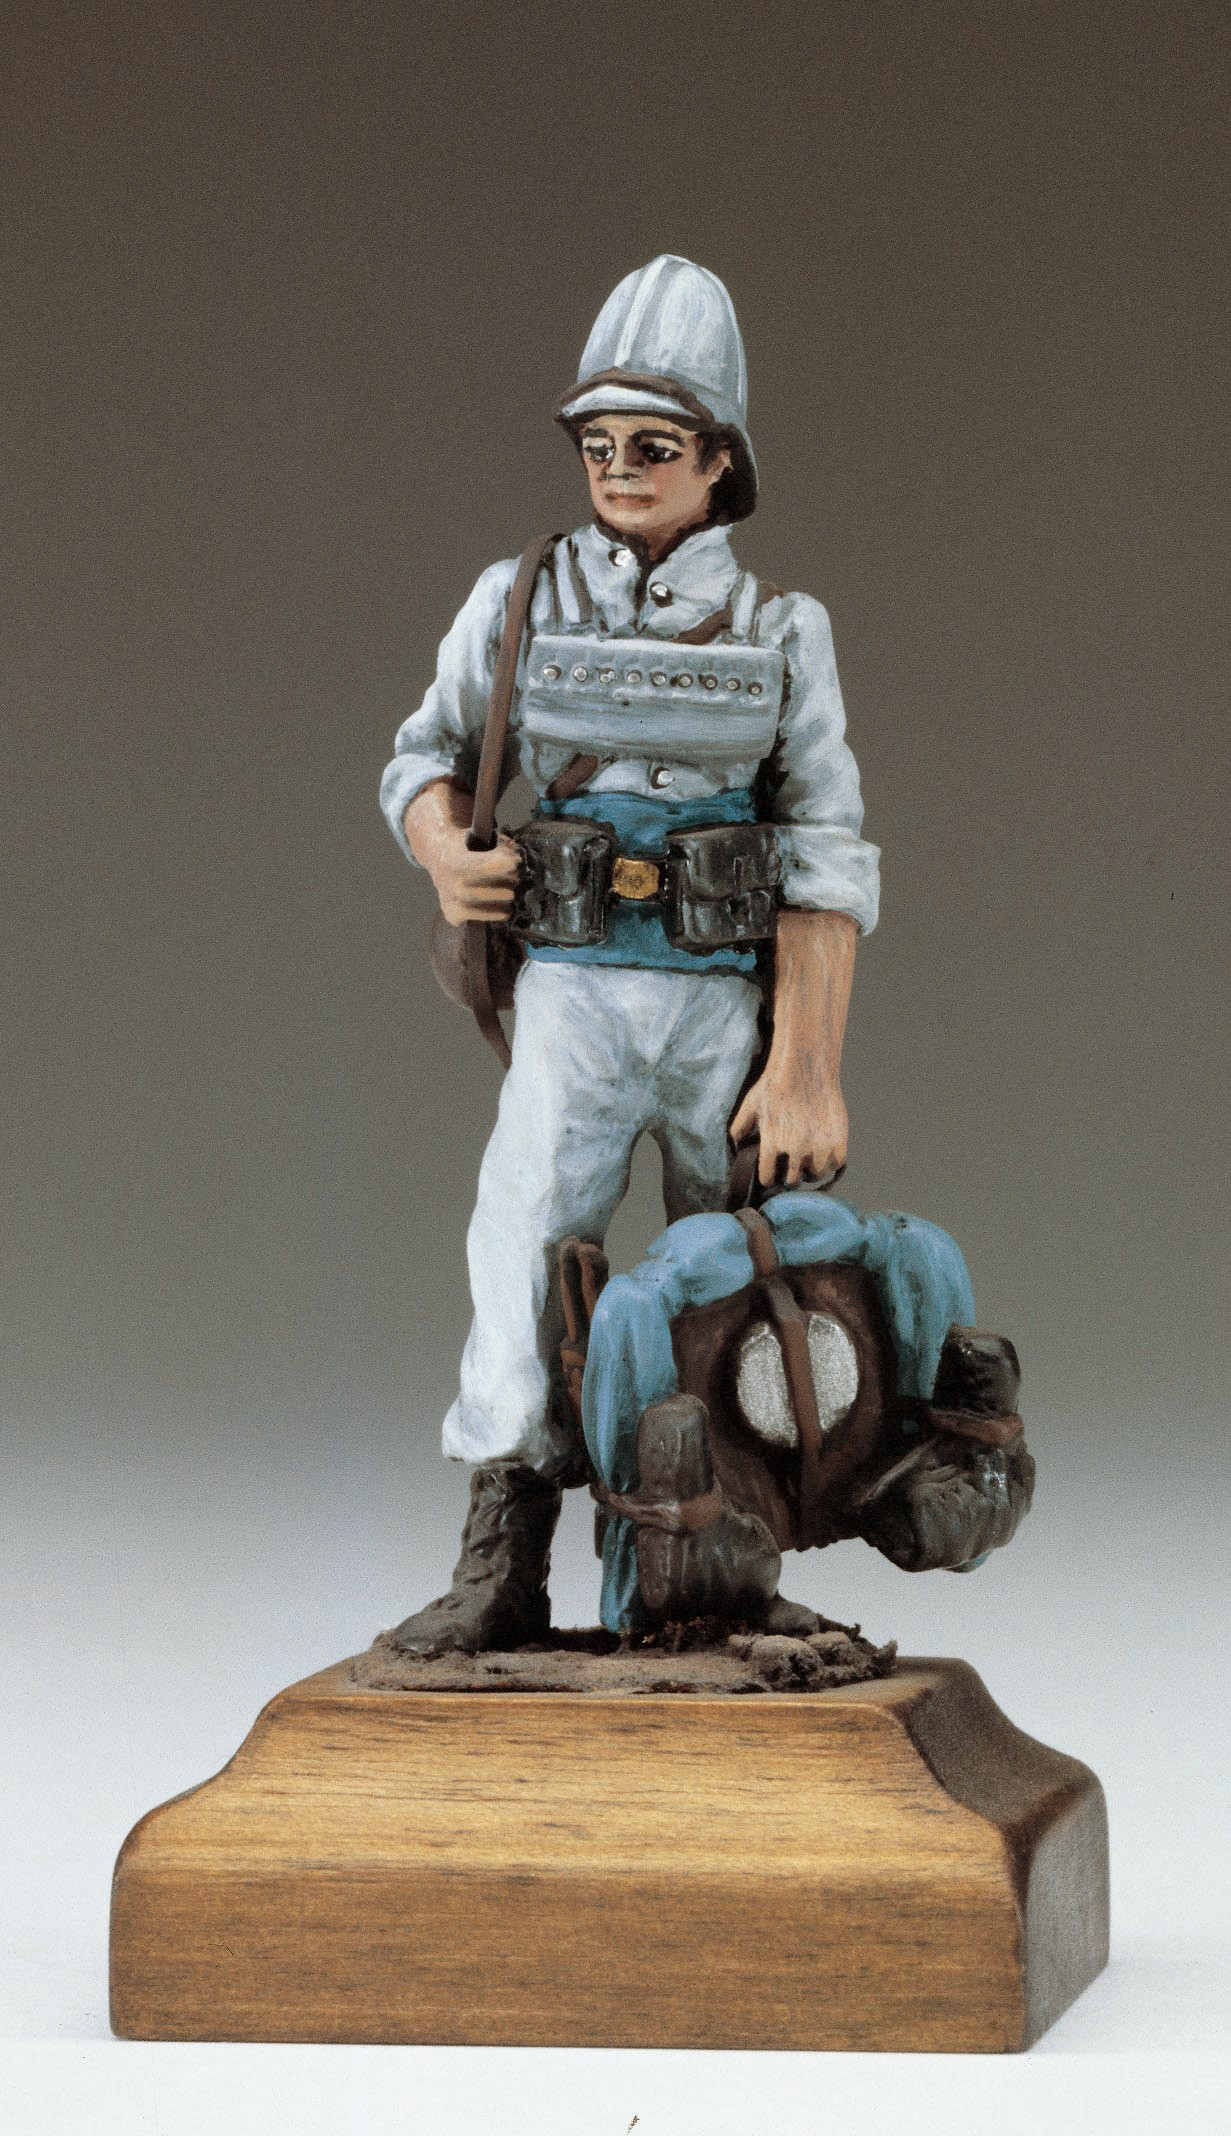 Foreign Legion Figurine, 1900 (Amati)